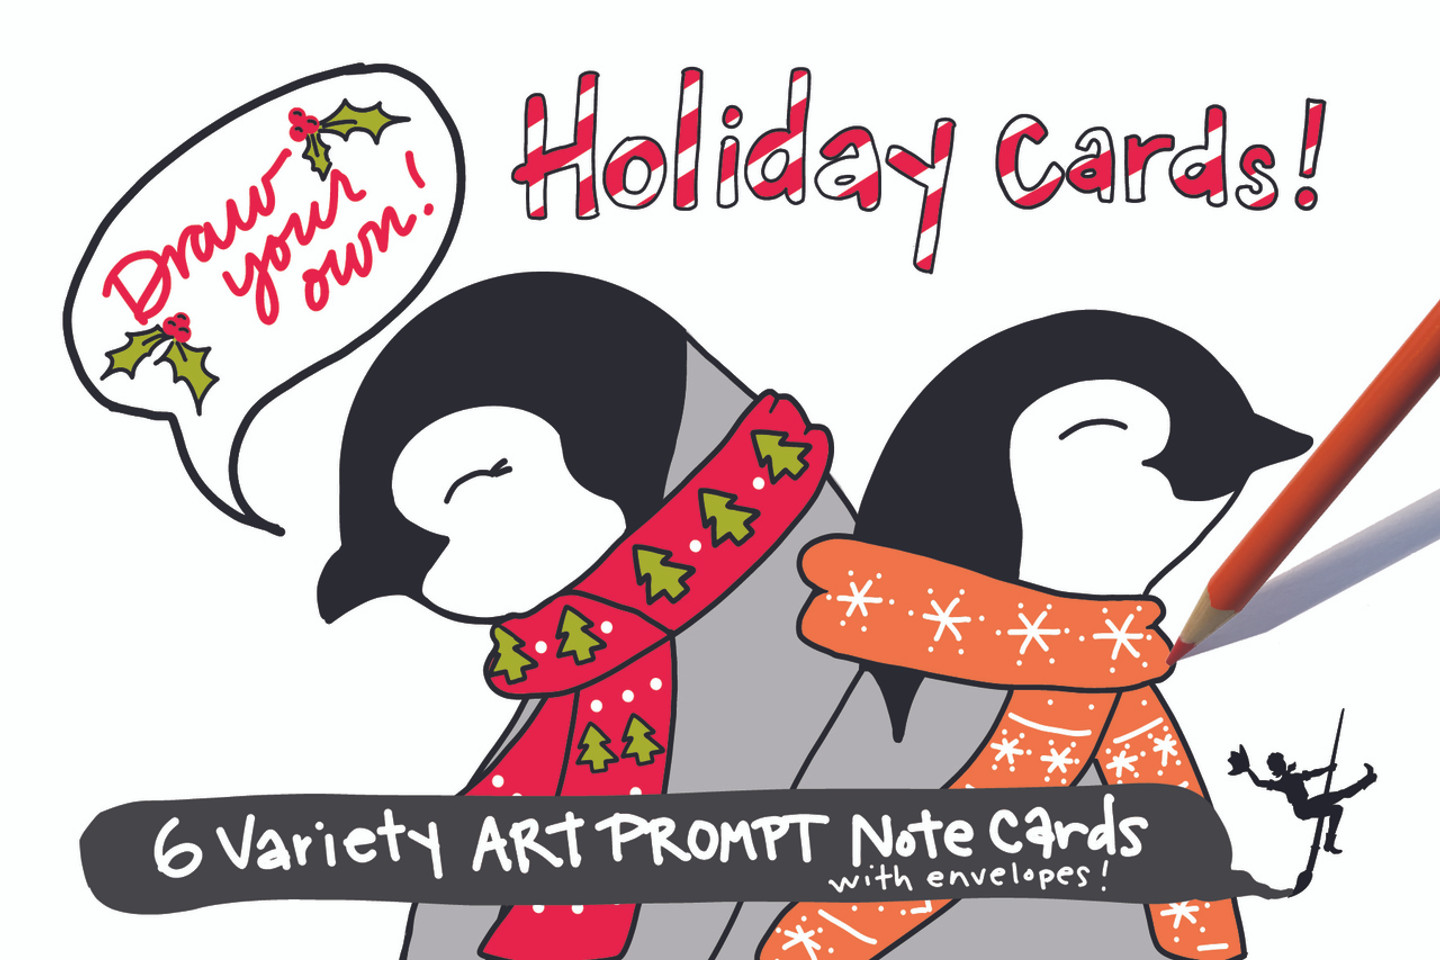 Holiday Cards | Draw Your Own (6-Variety)